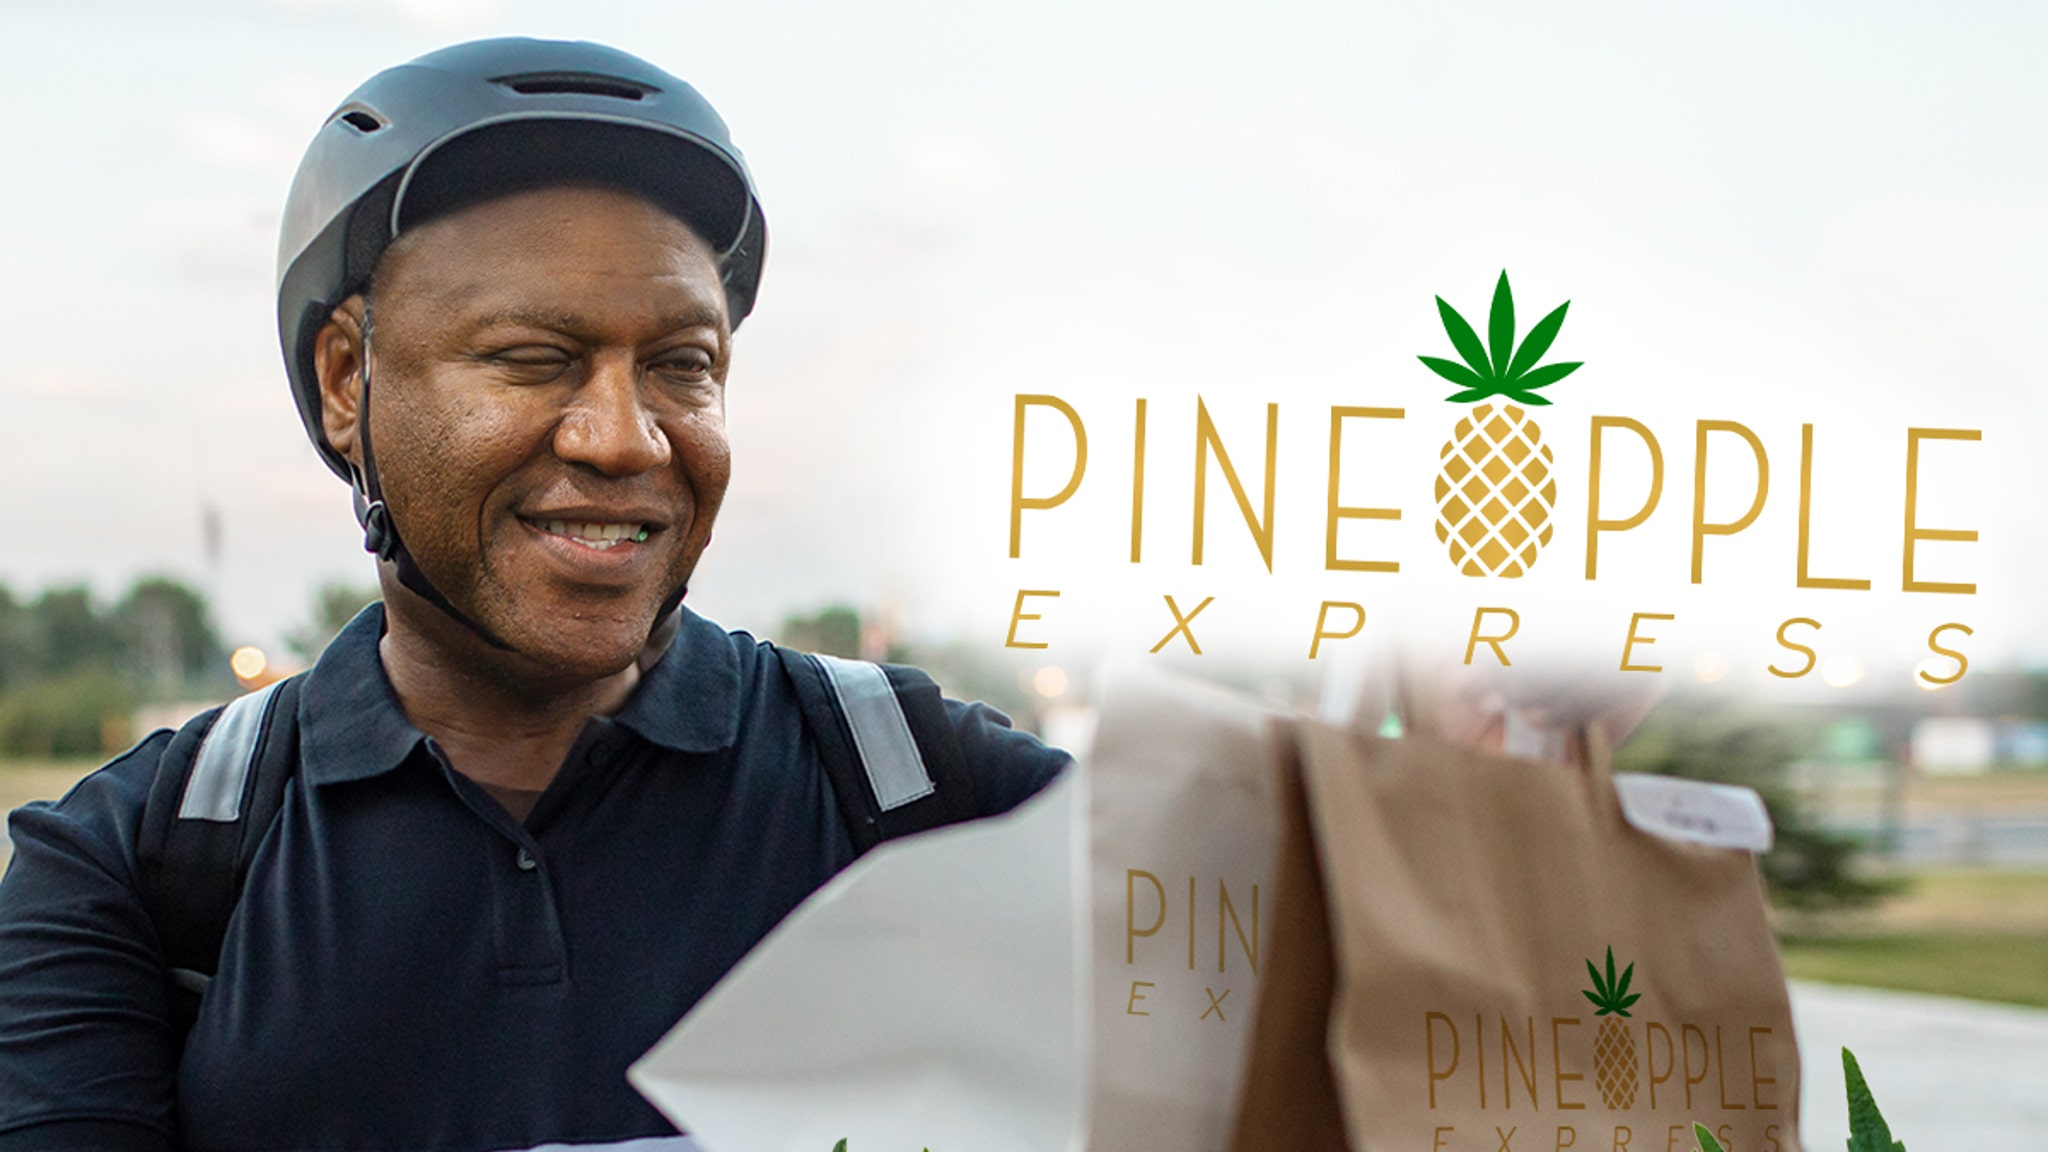 'Friday' Star Tommy 'Tiny' Lister Delivers Weed for Pineapple Express